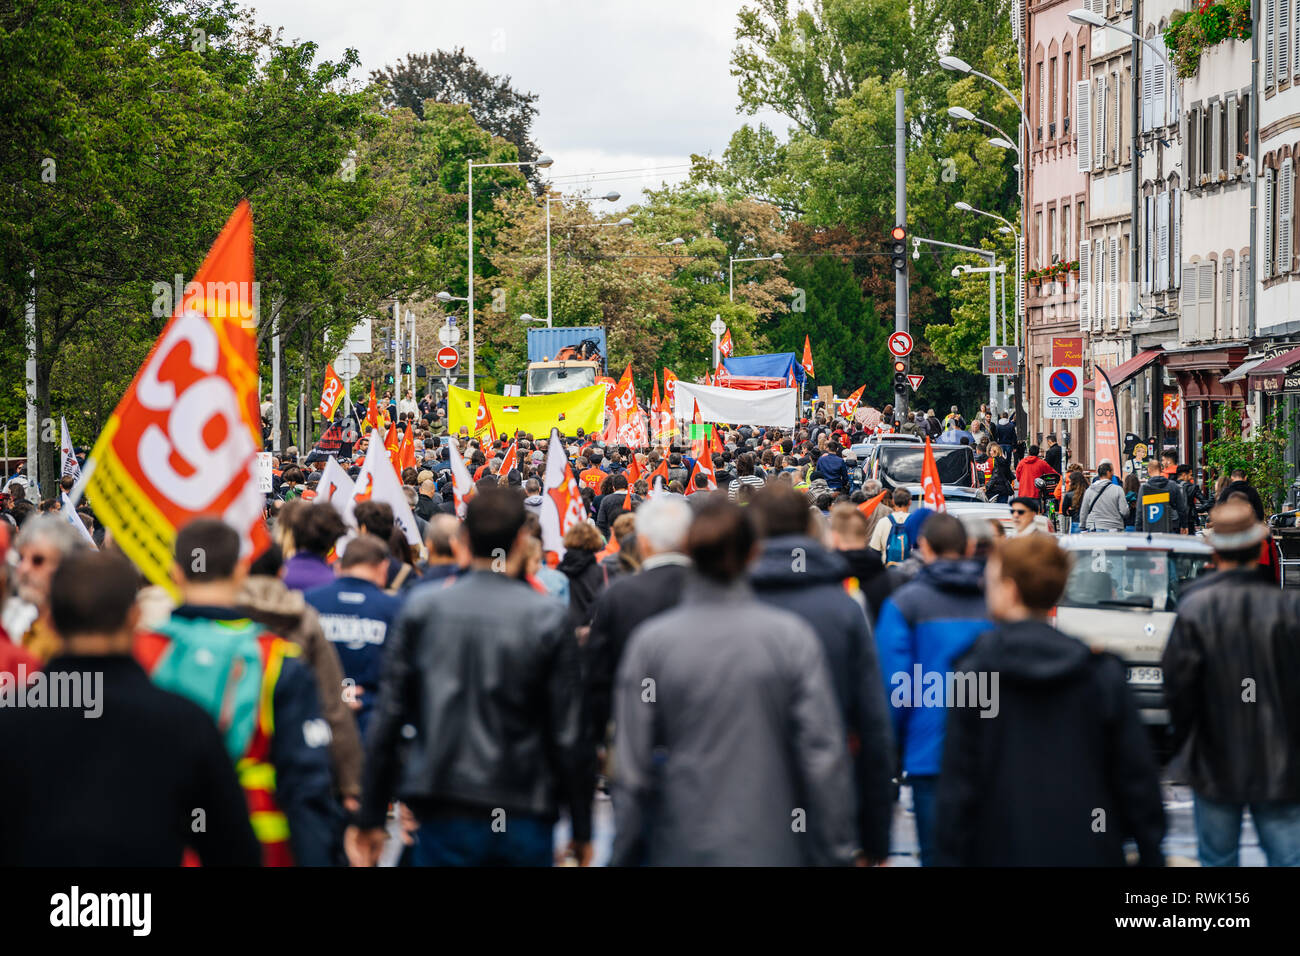 Strasbourg, France - Sep 12, 2017: Rear view of thousands of people on Quai des Pecheurs street political march during a French Nationwide day of protest against the labor reforms - Stock Image